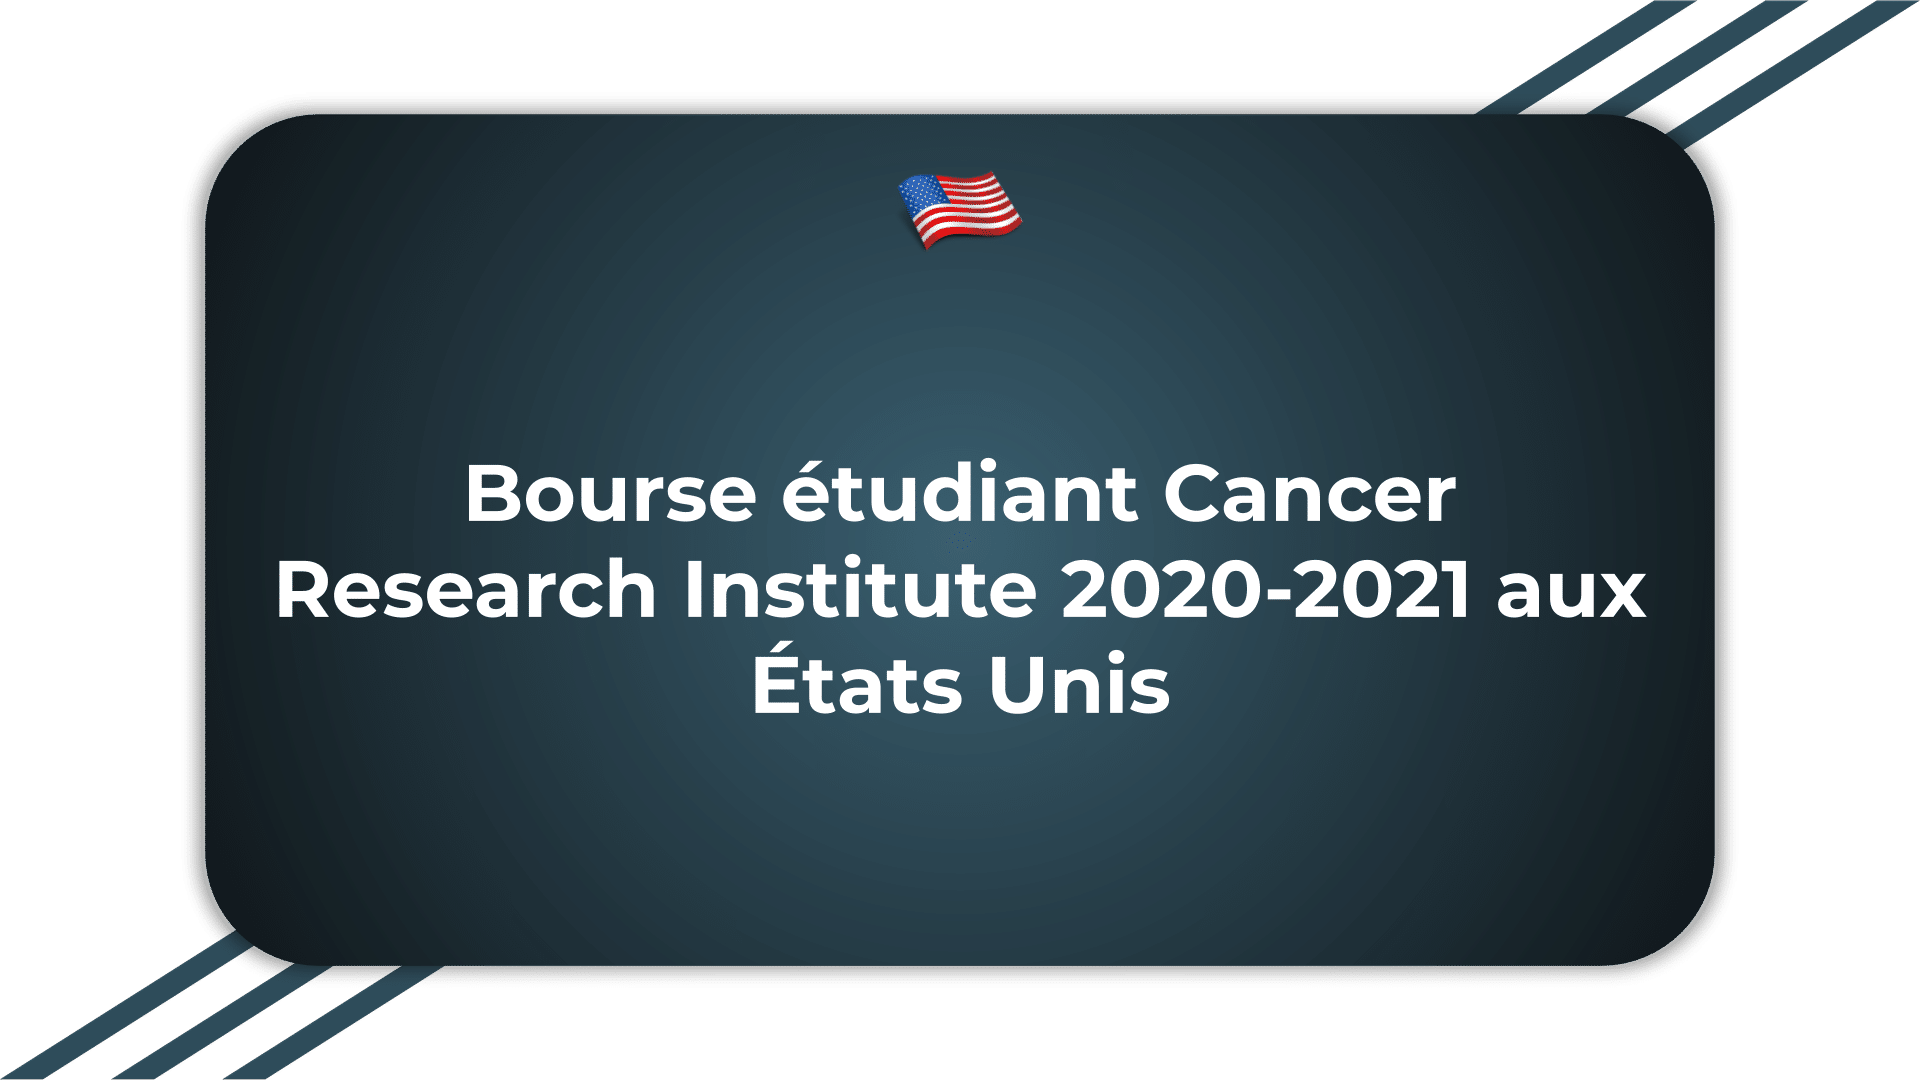 Bourse étudiant Cancer Research Institute